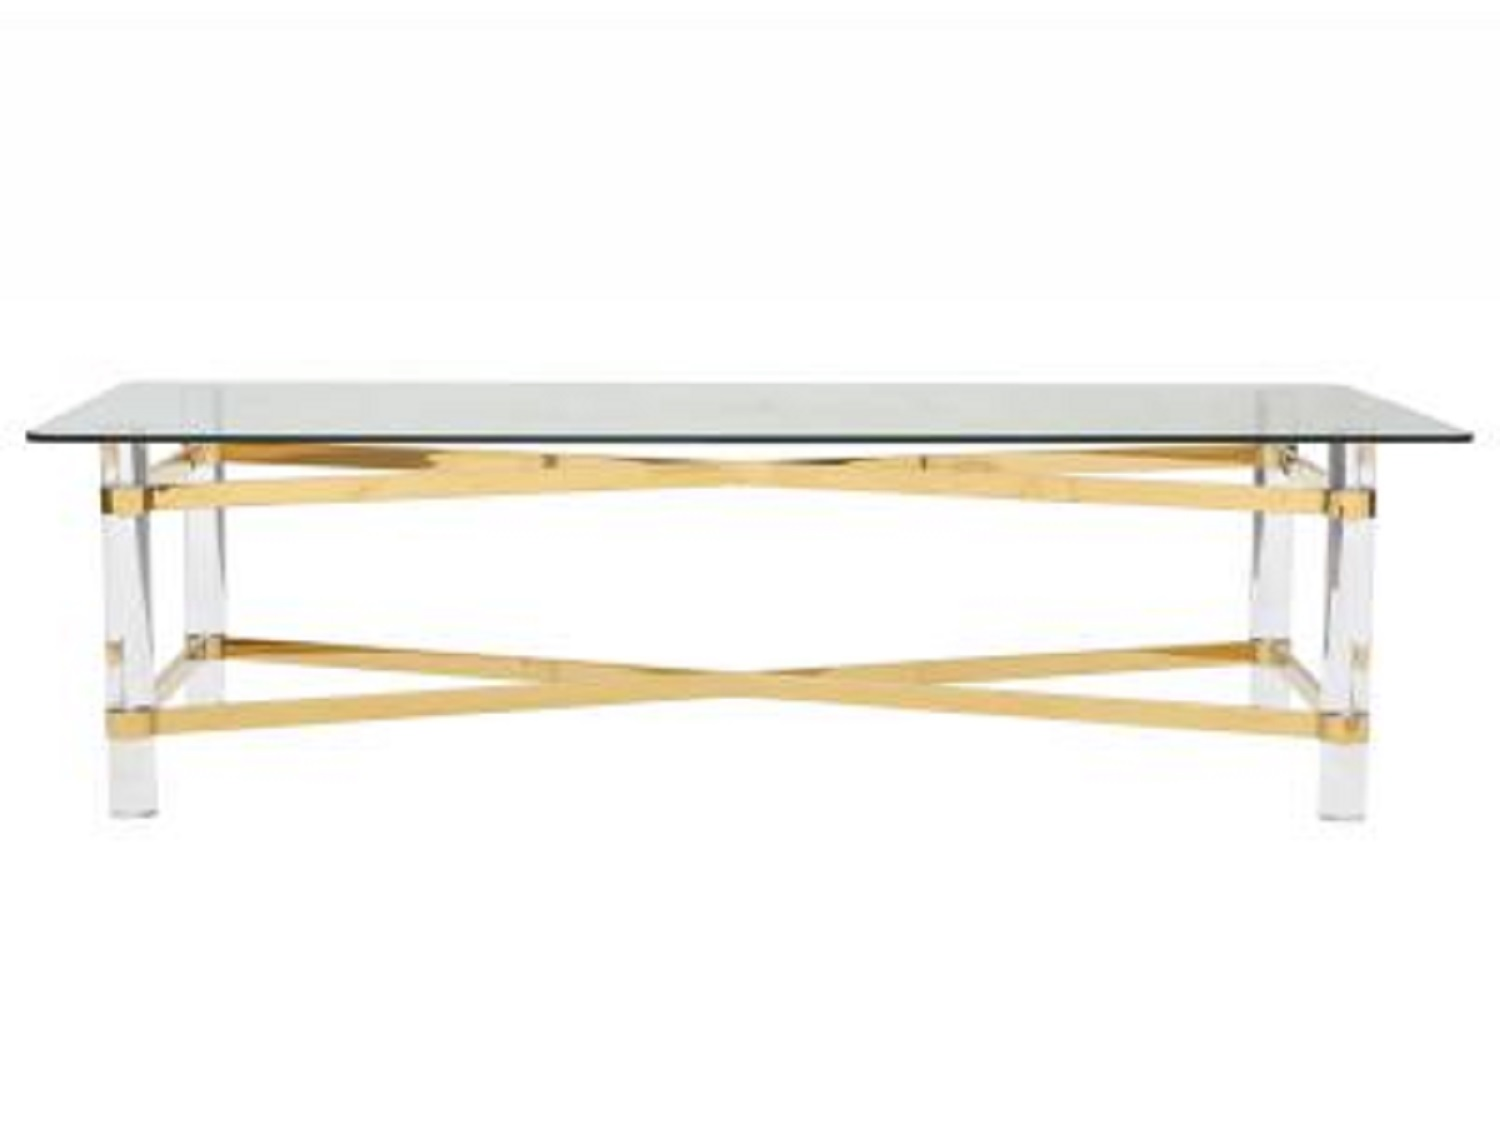 MORELIA II-COFFEE TABLE-GOLD, 841173031091, Console Table by Midha Furniture to Brampton, Mississauga, Etobicoke, Toronto, Scraborough, Caledon, Oakville, Markham, Ajax, Pickering, Oshawa, Richmondhill, Kitchener, Hamilton and GTA area